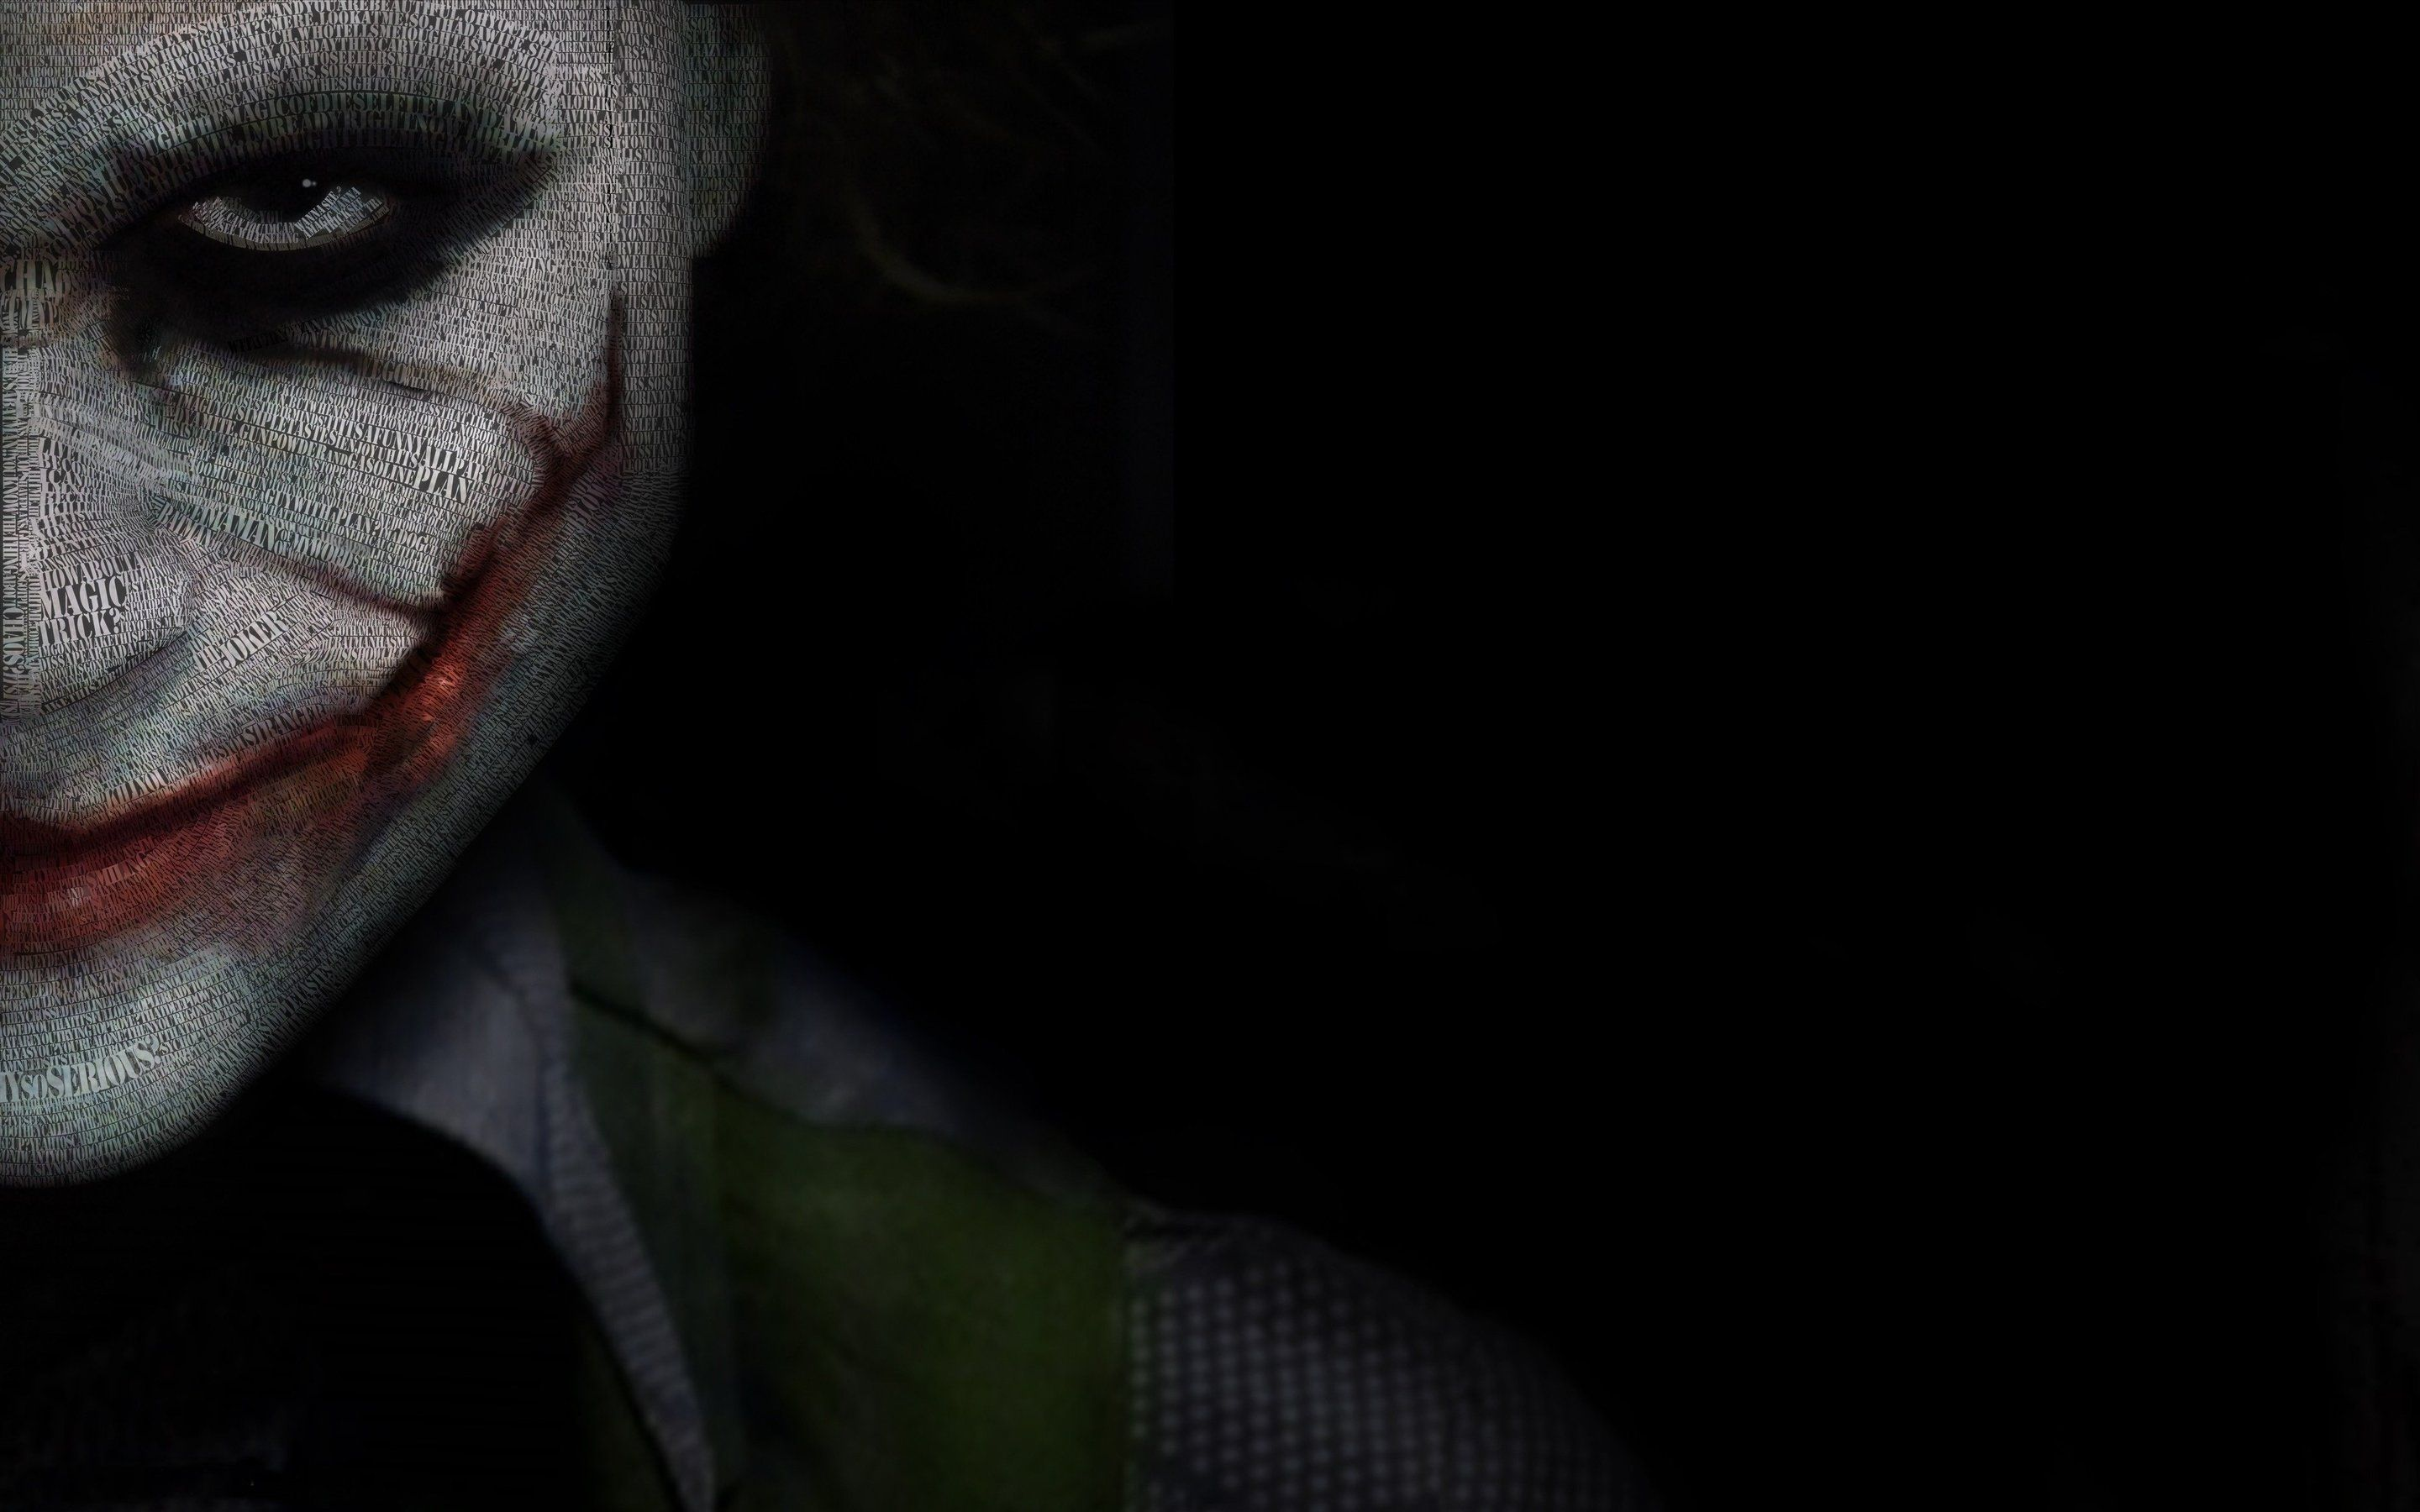 2880x1800 4k Joker Macbook Pro Retina Hd 4k Wallpapers